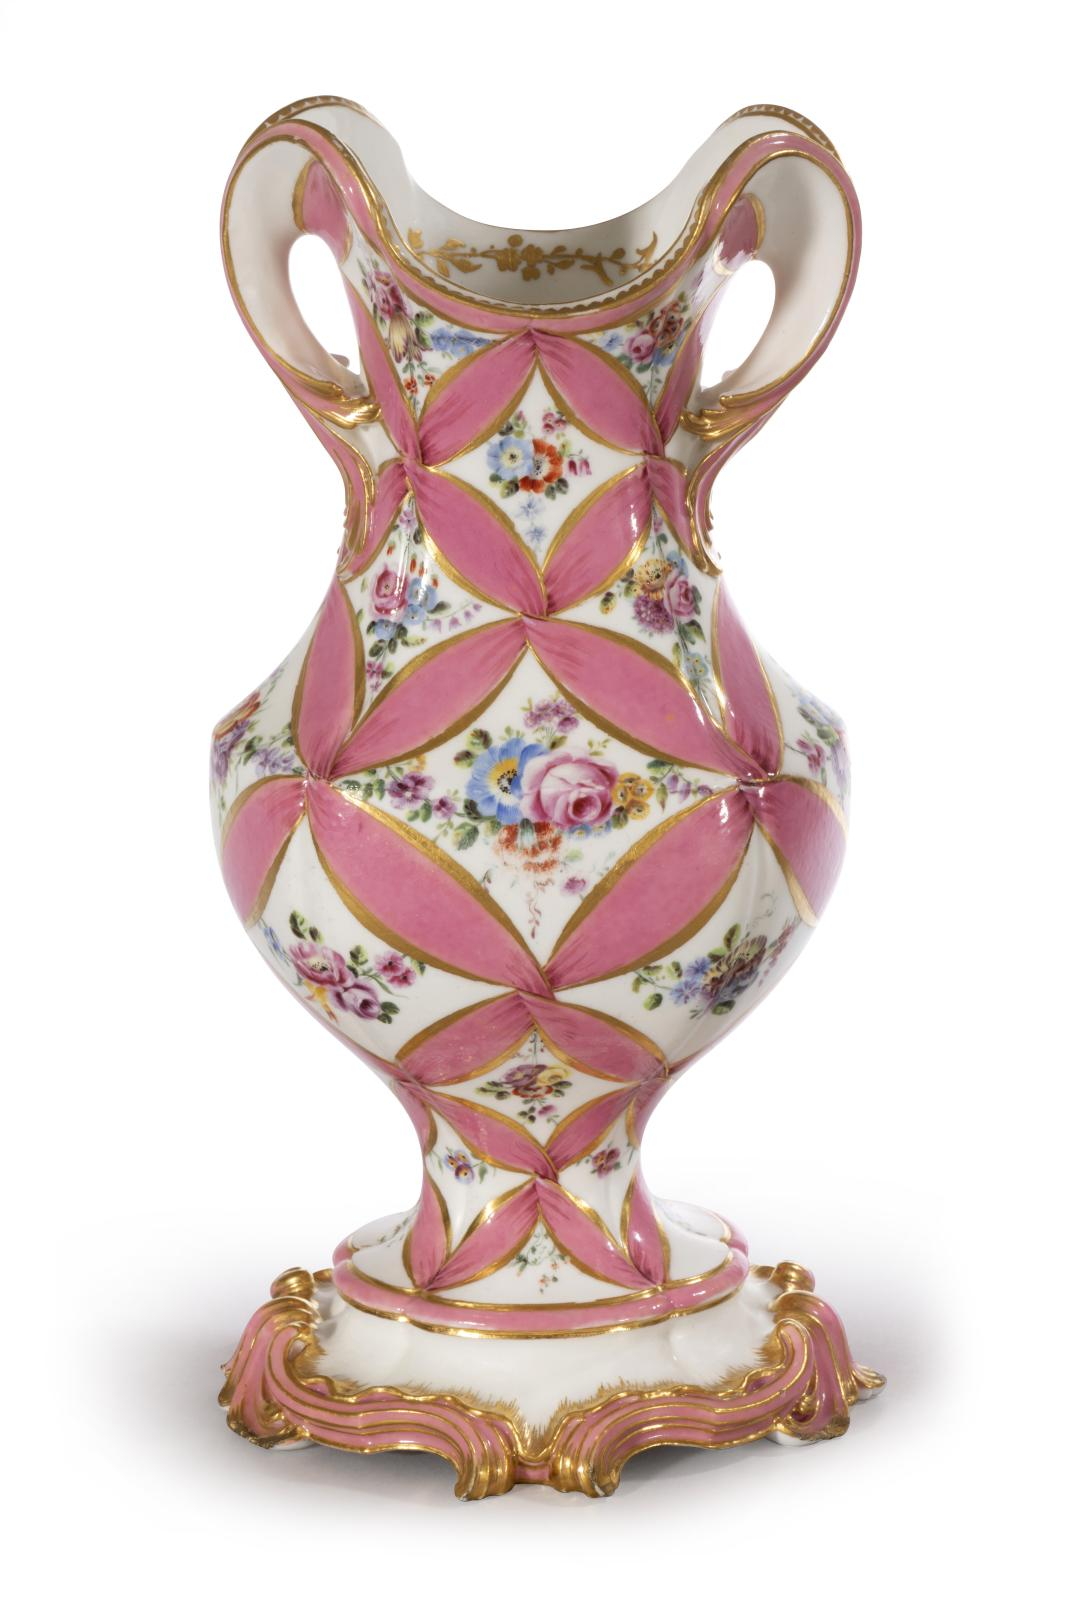 Rocaille vase with decoration of pink ribbons and bouquets of flowers painted naturalistically.